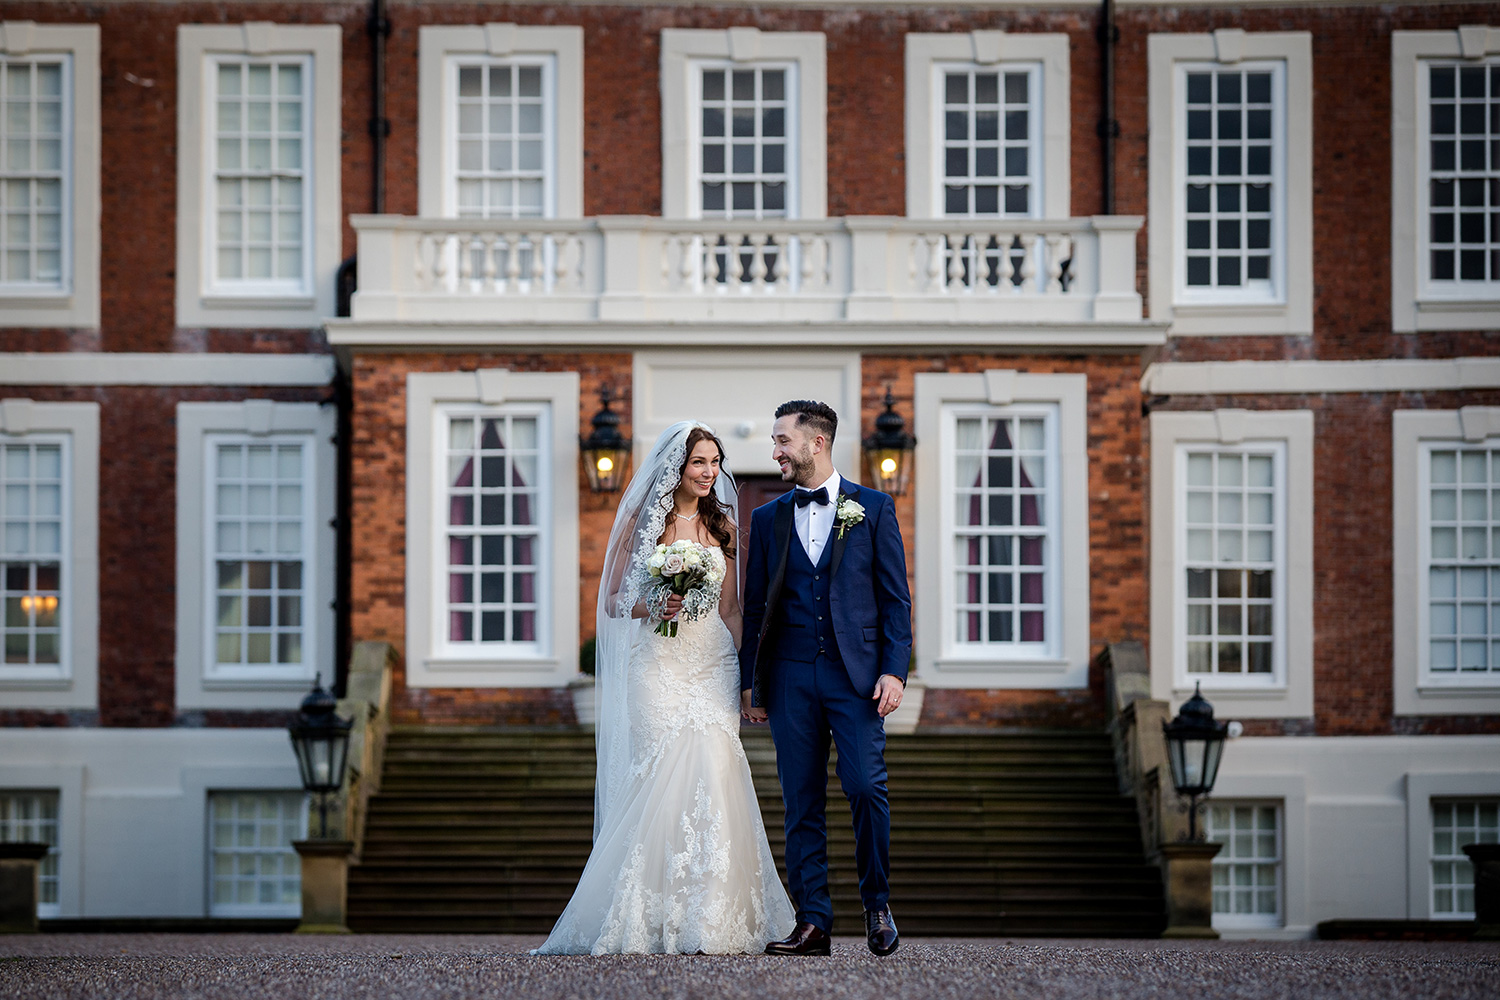 The bride and groom outside Knowsley Hall on their wedding day